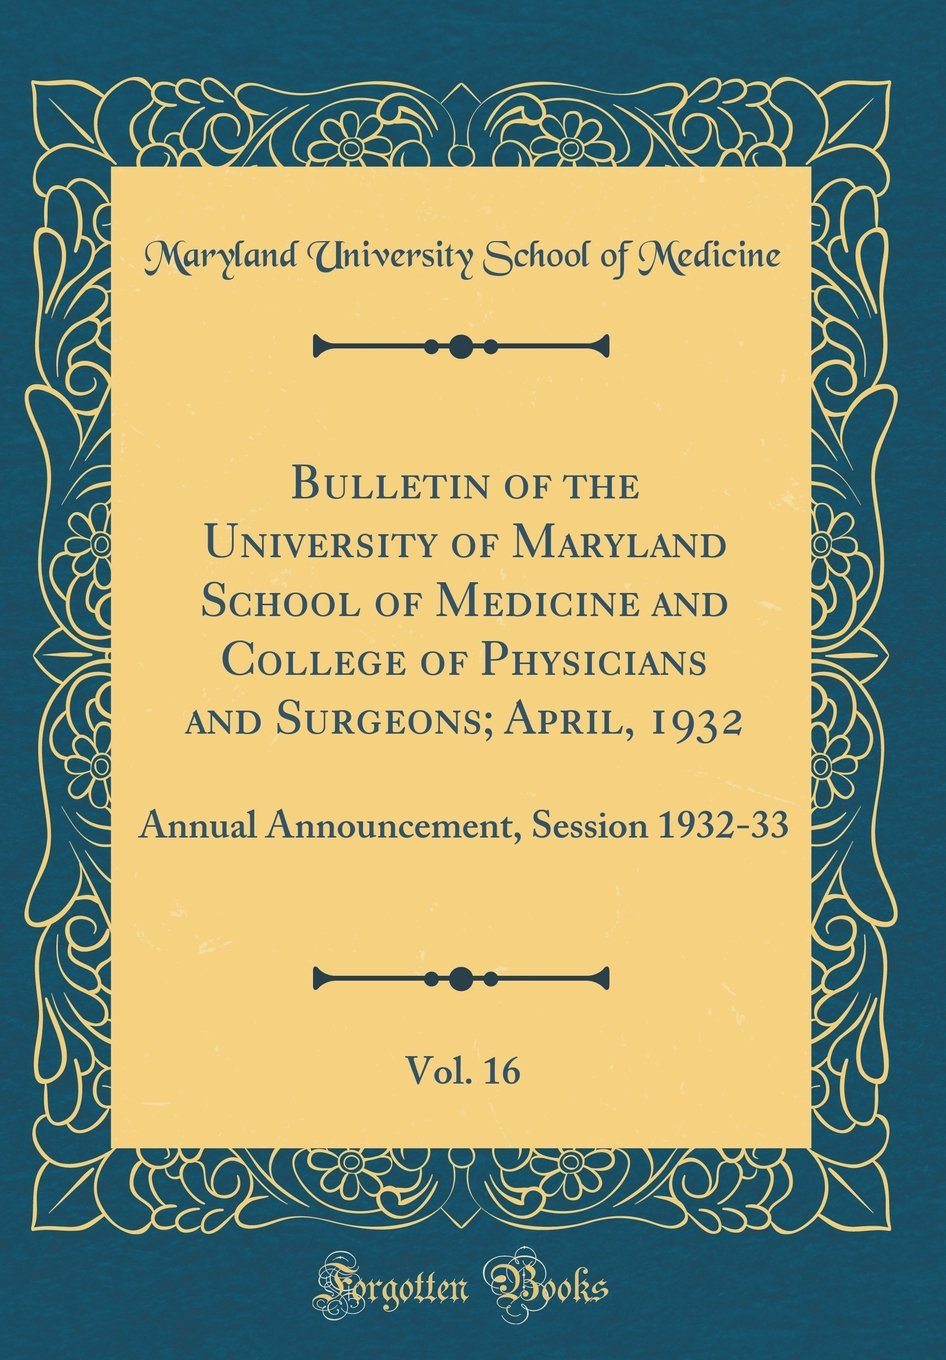 Bulletin of the University of Maryland School of Medicine and College of Physicians and Surgeons; April, 1932, Vol. 16: Annual Announcement, Session 1932-33 (Classic Reprint) PDF